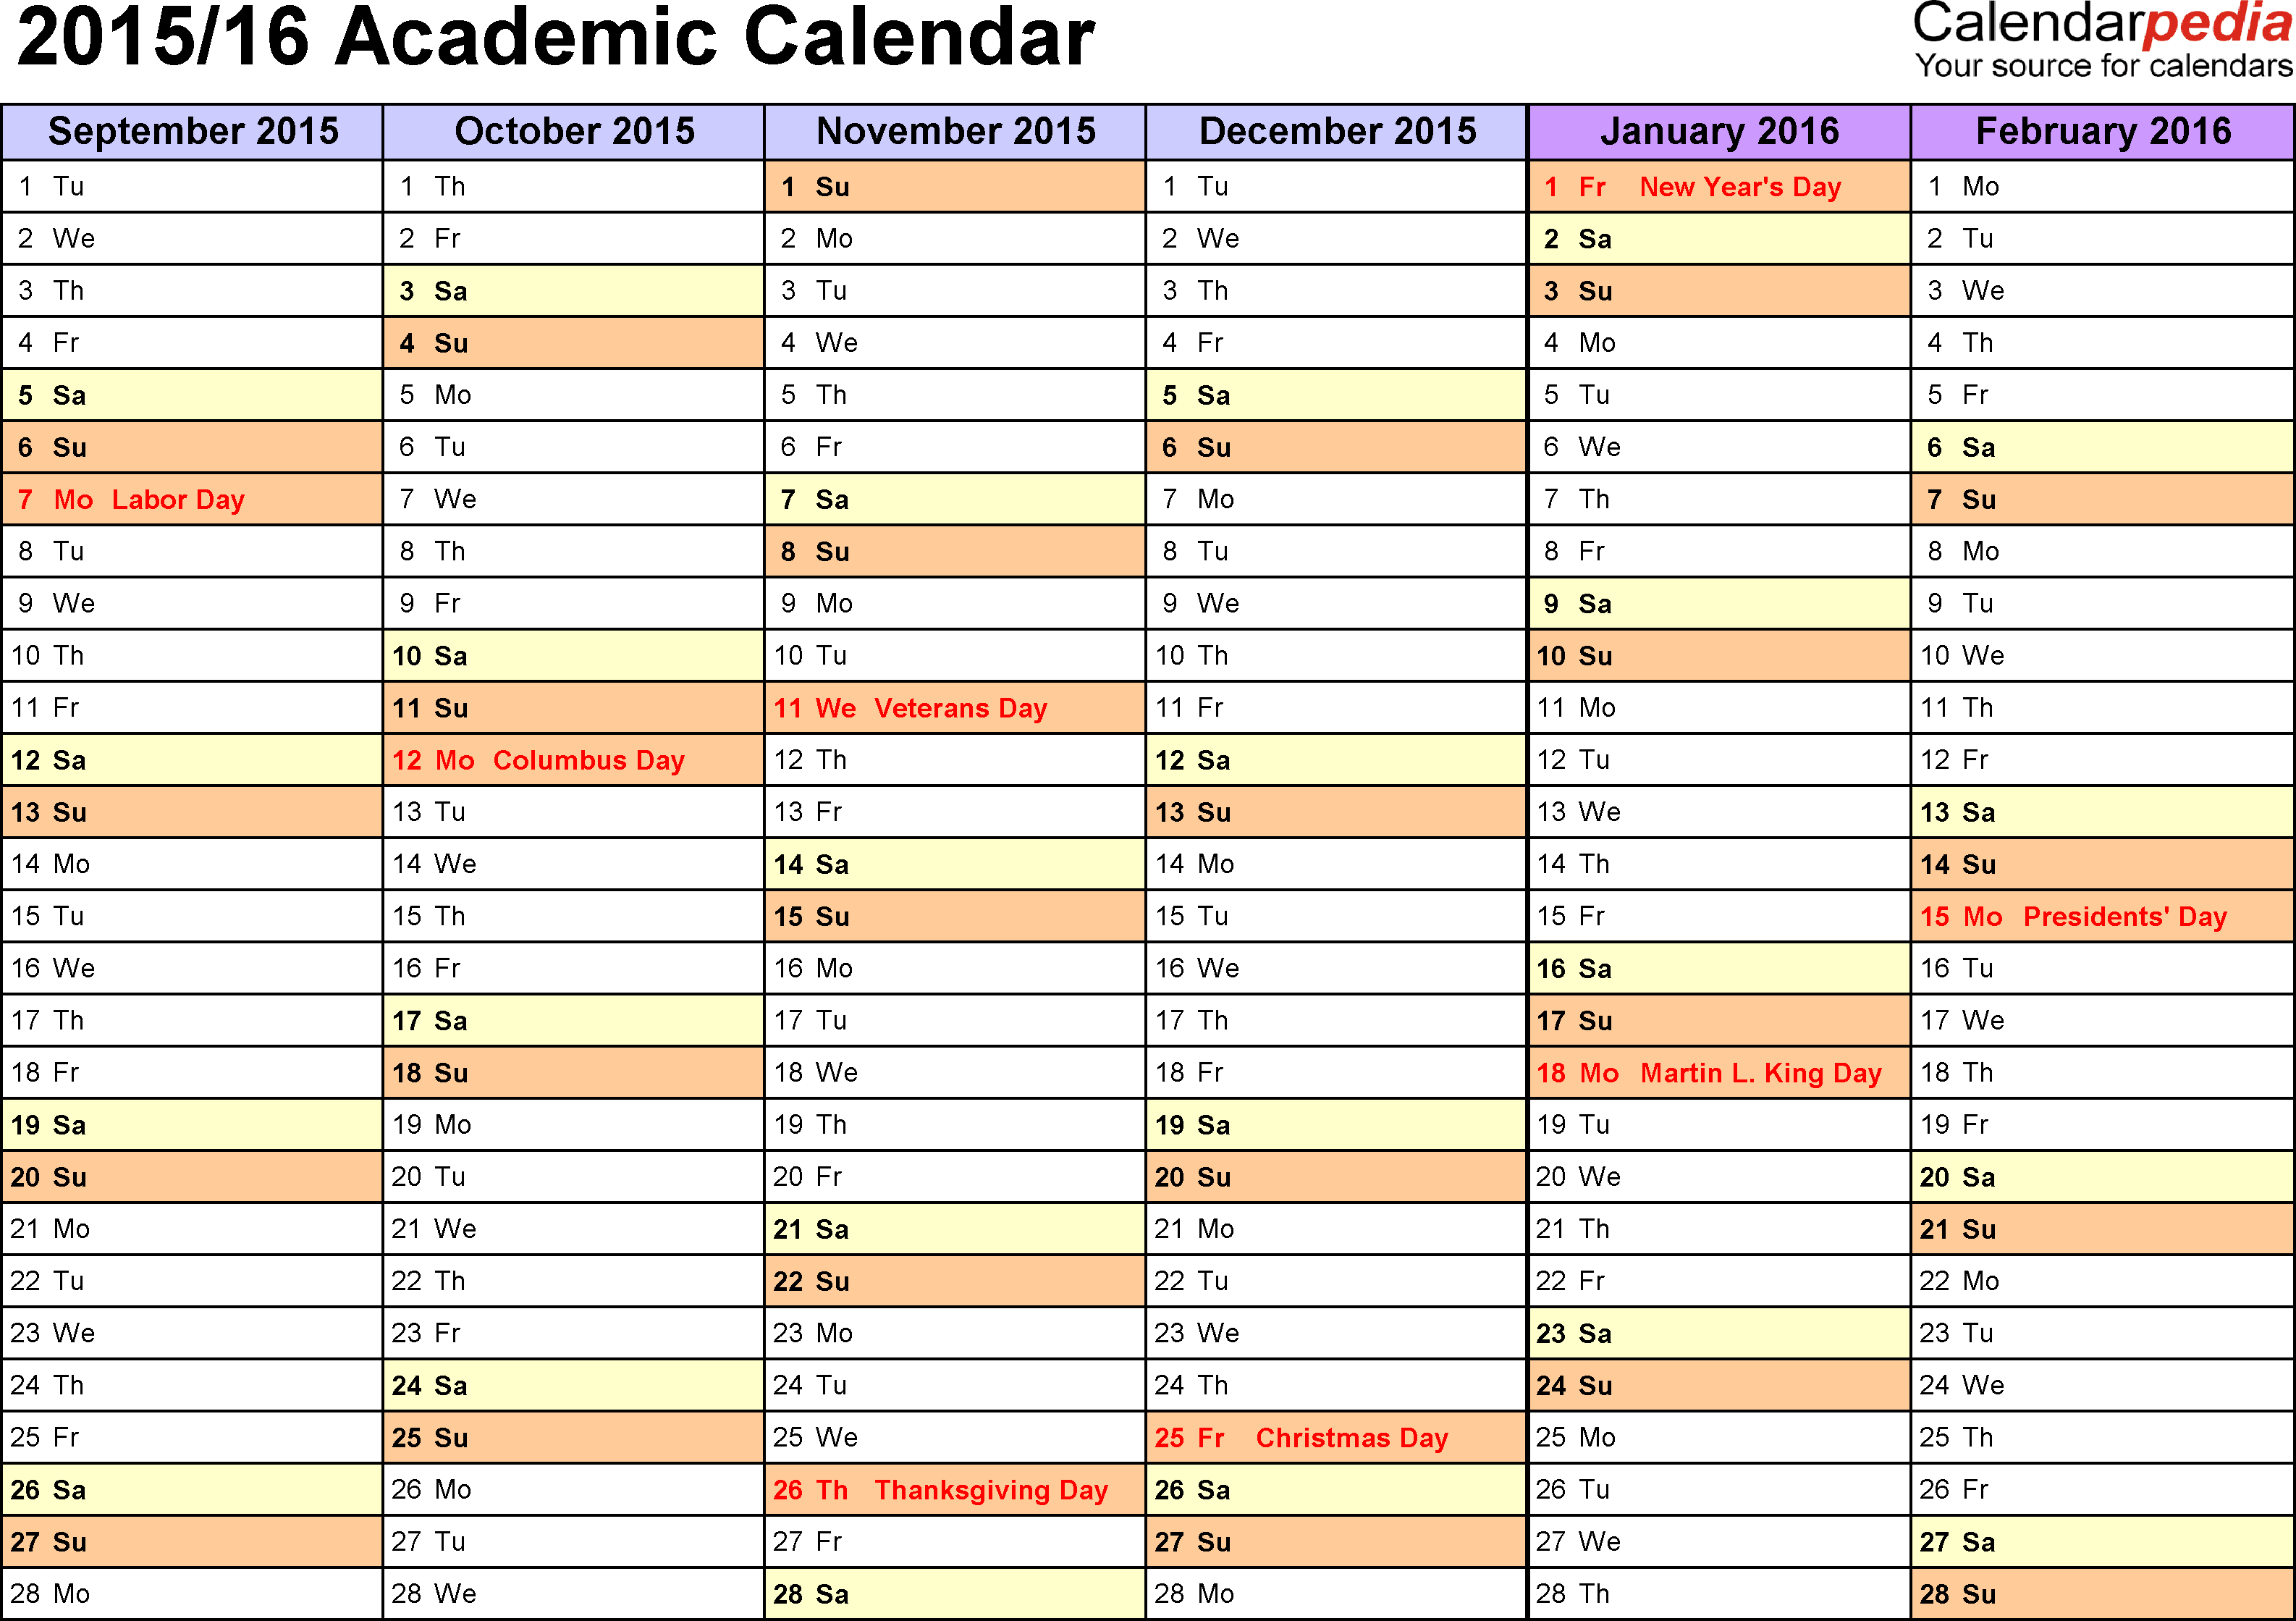 Academic calendars 2015/2016 as free printable Excel templates